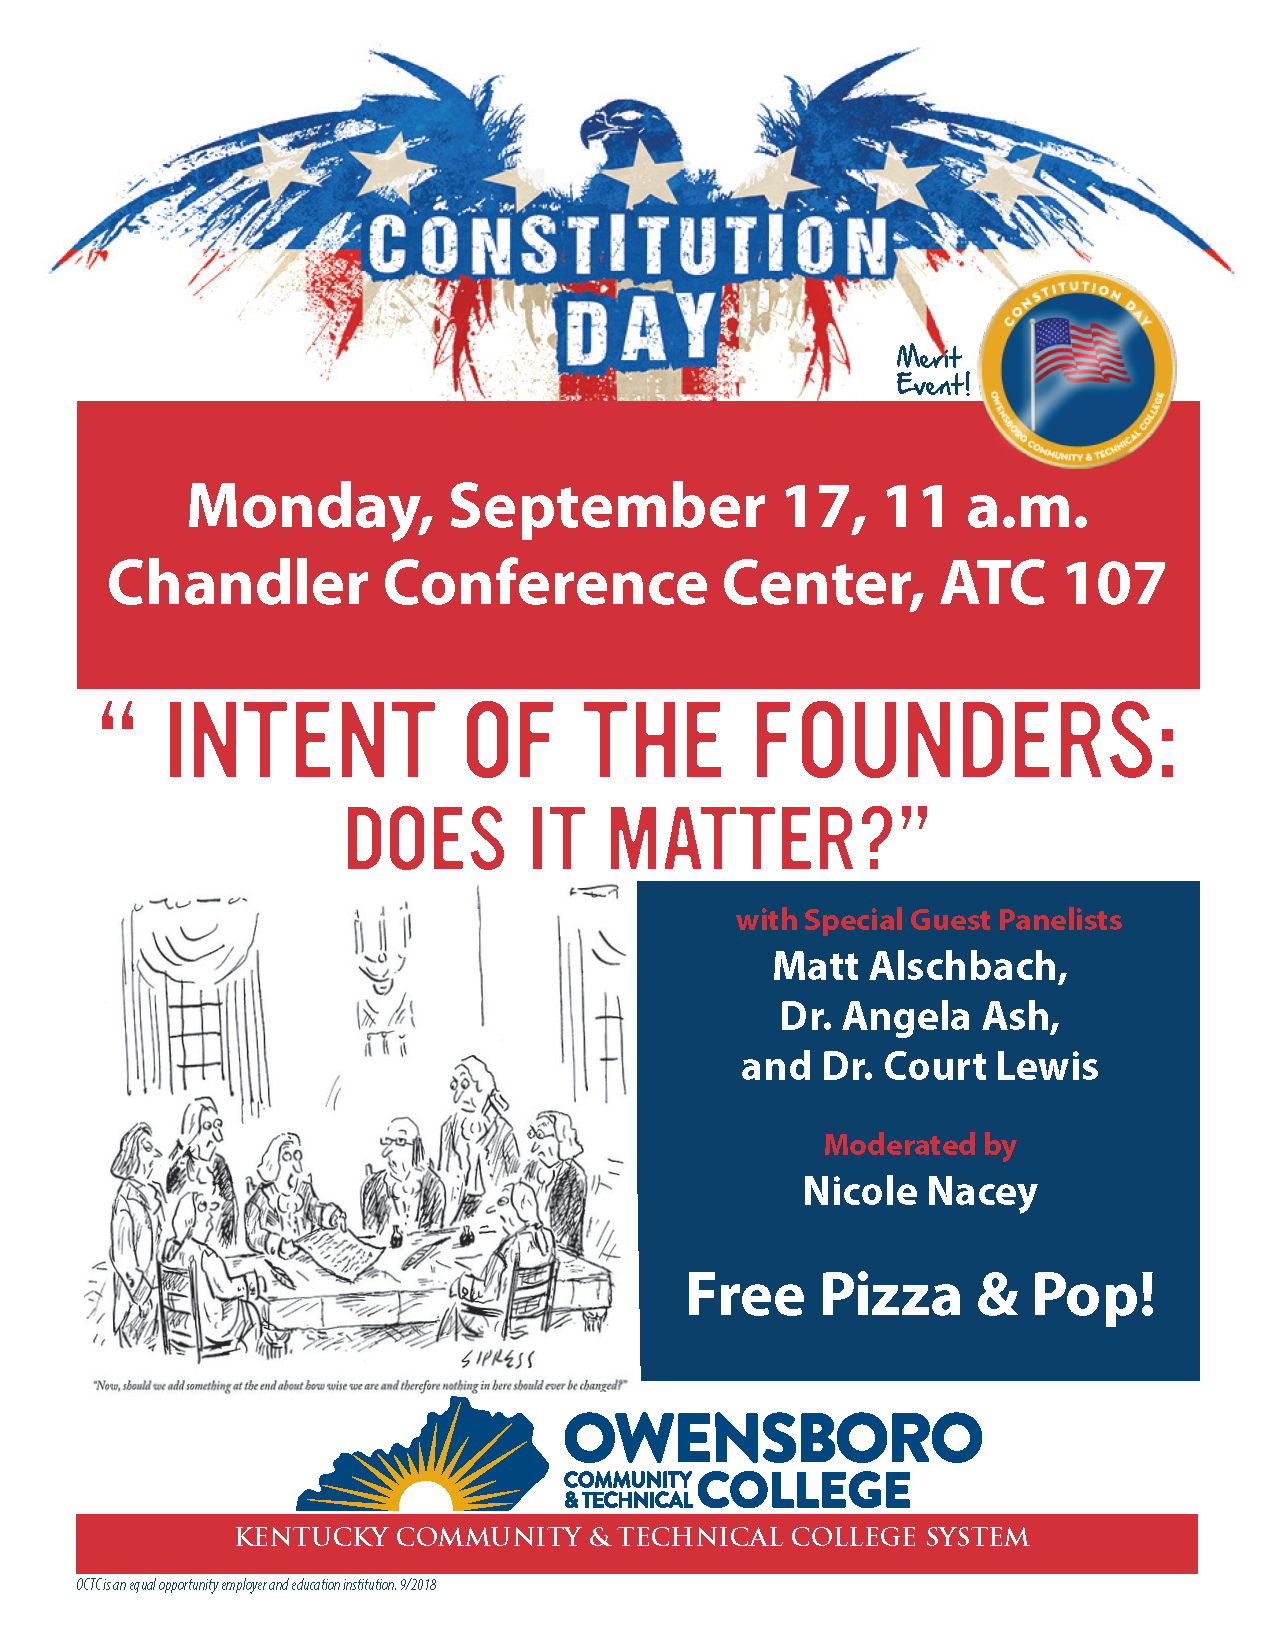 flyer promoting Constitution Day at OCTC